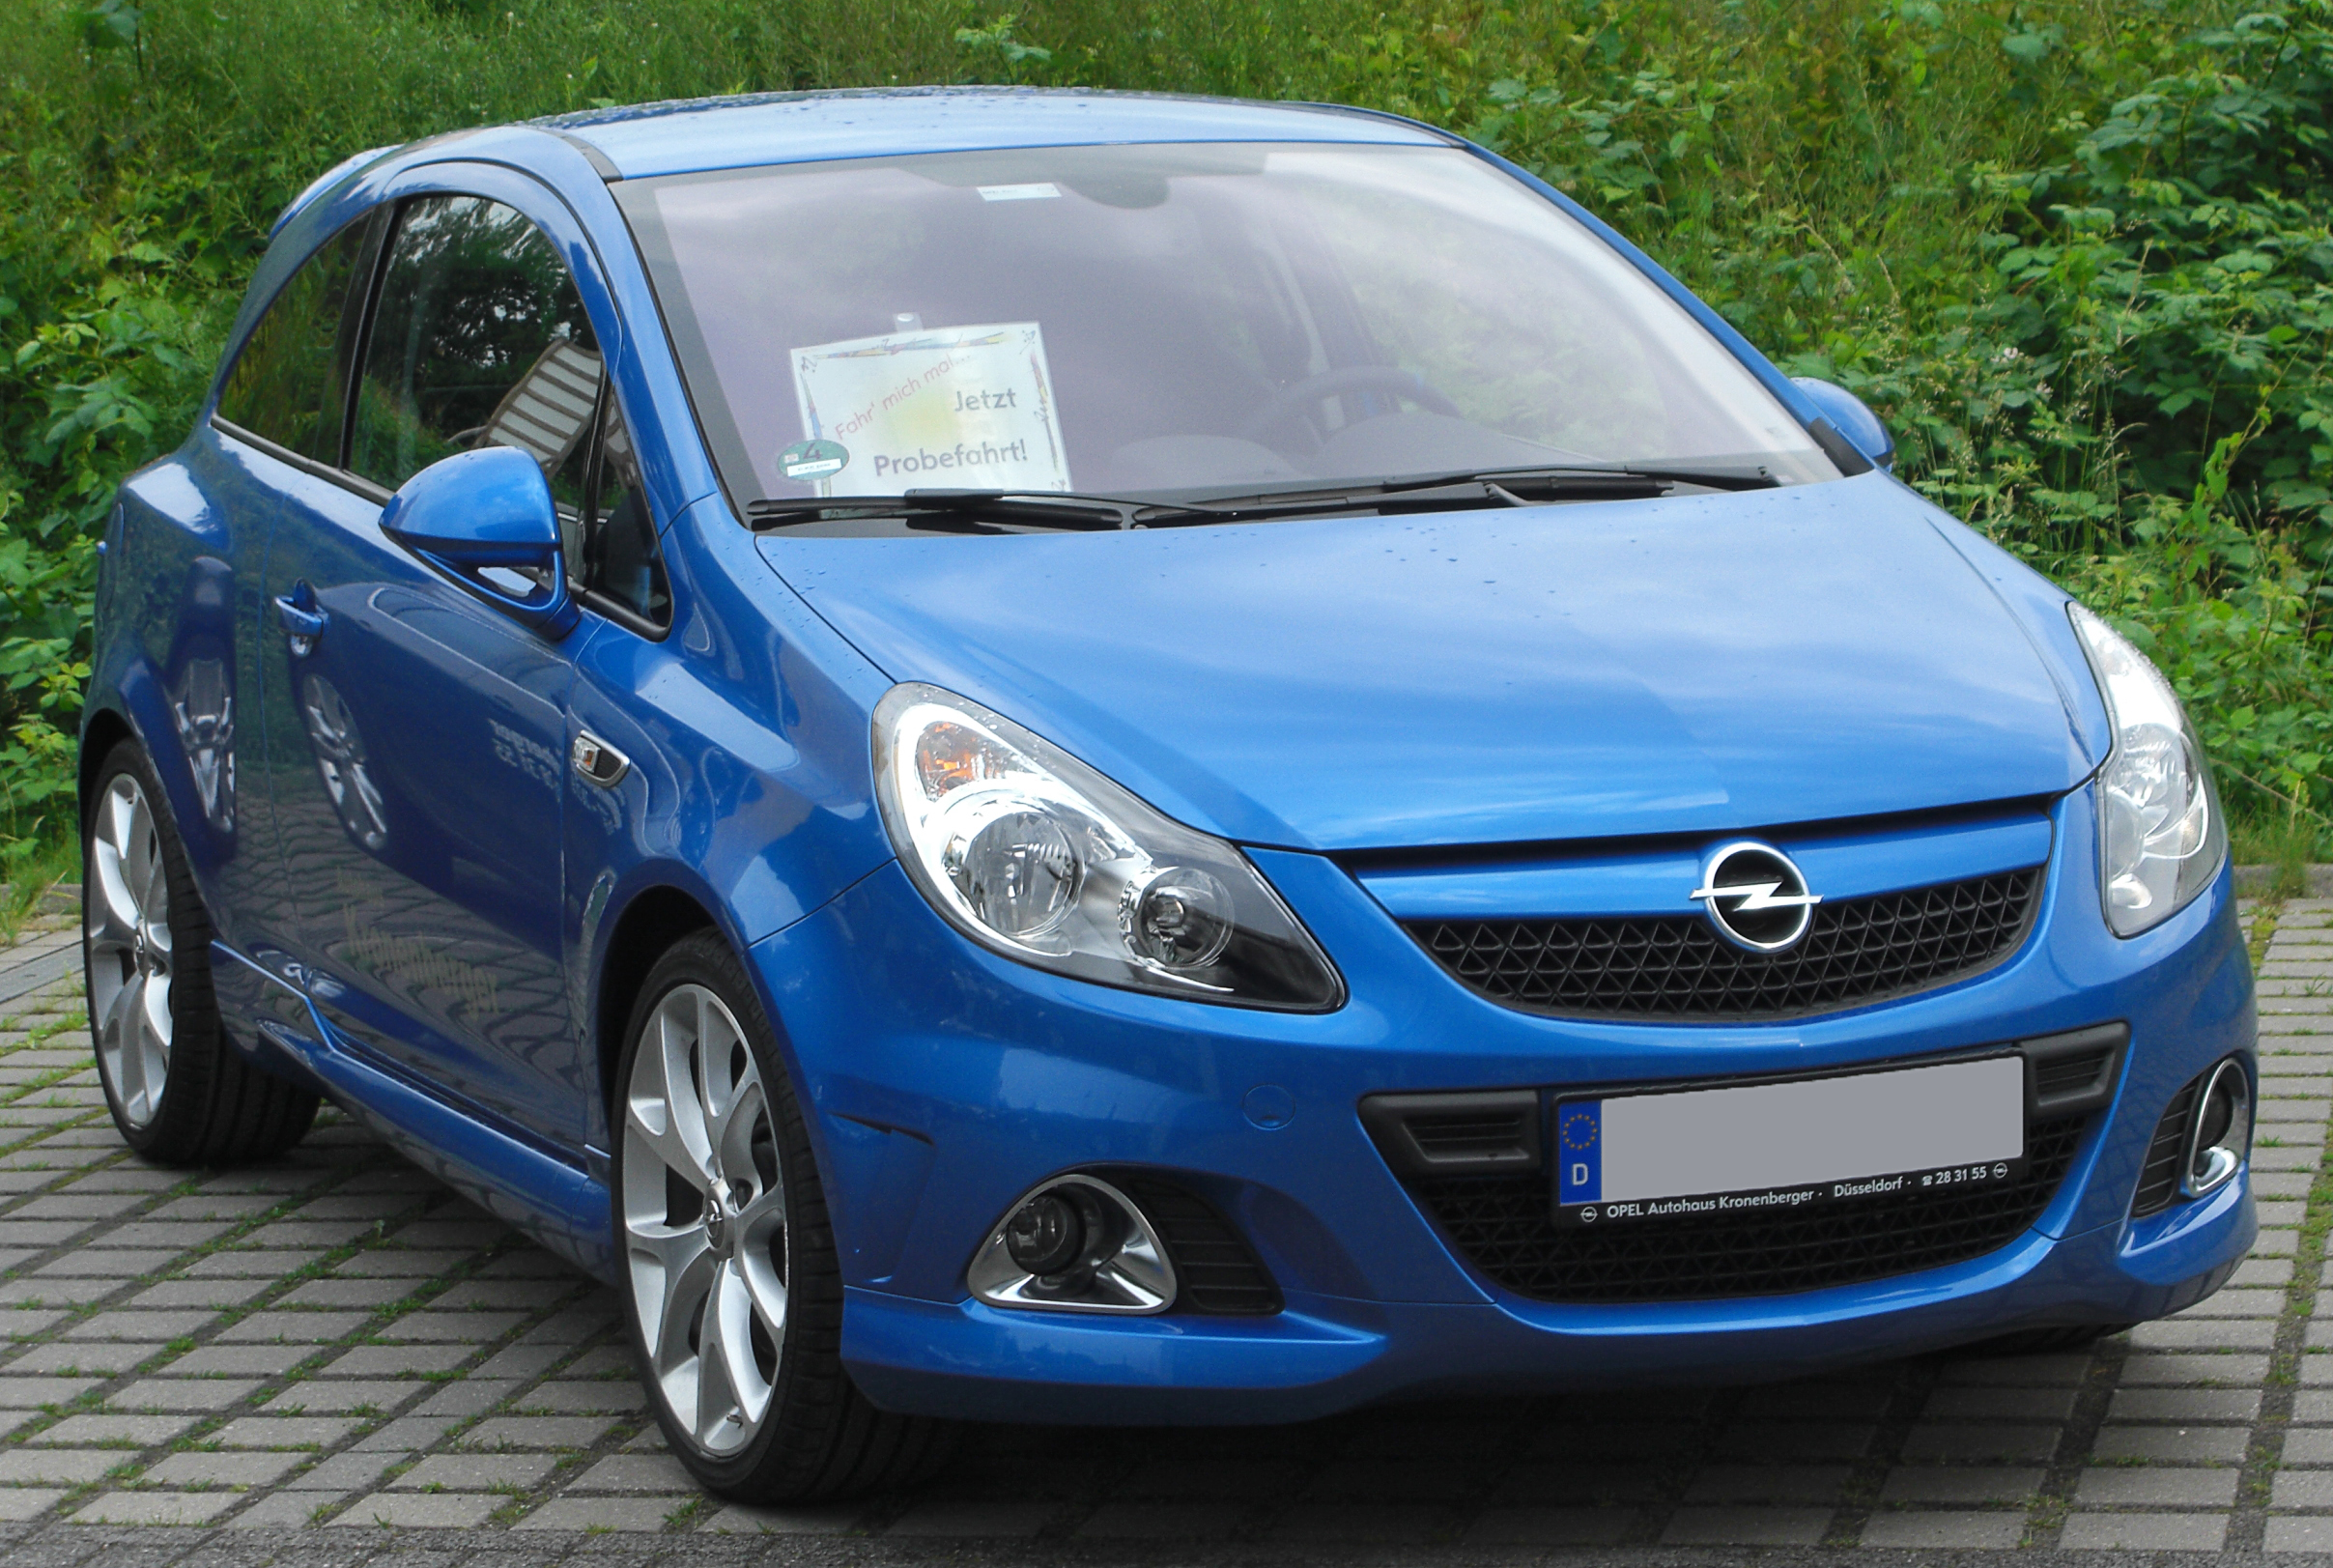 opel corsa opc d 2007 2010 hatchback 3 door. Black Bedroom Furniture Sets. Home Design Ideas